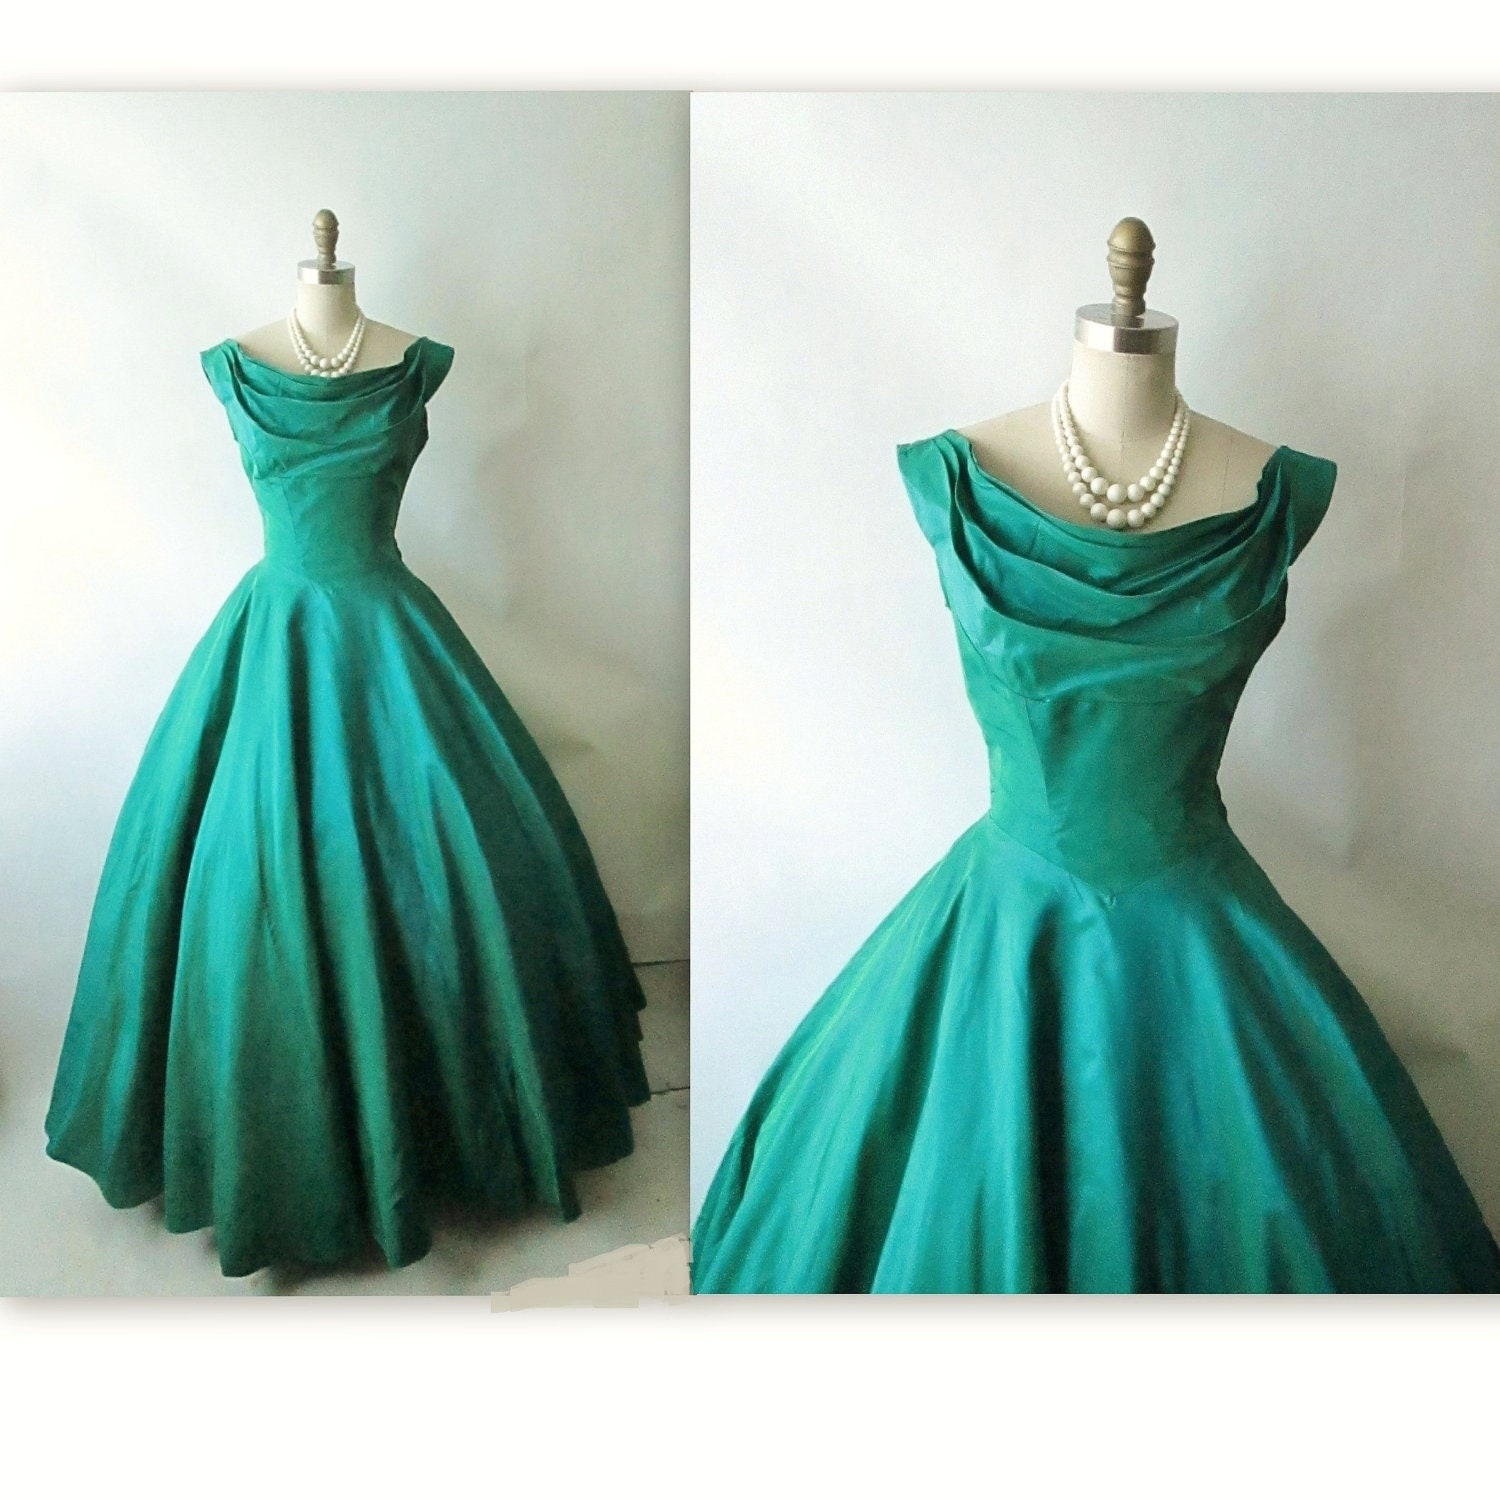 50&-39-s Evening Gown // Vintage 1950&-39-s Emerald by TheVintageStudio